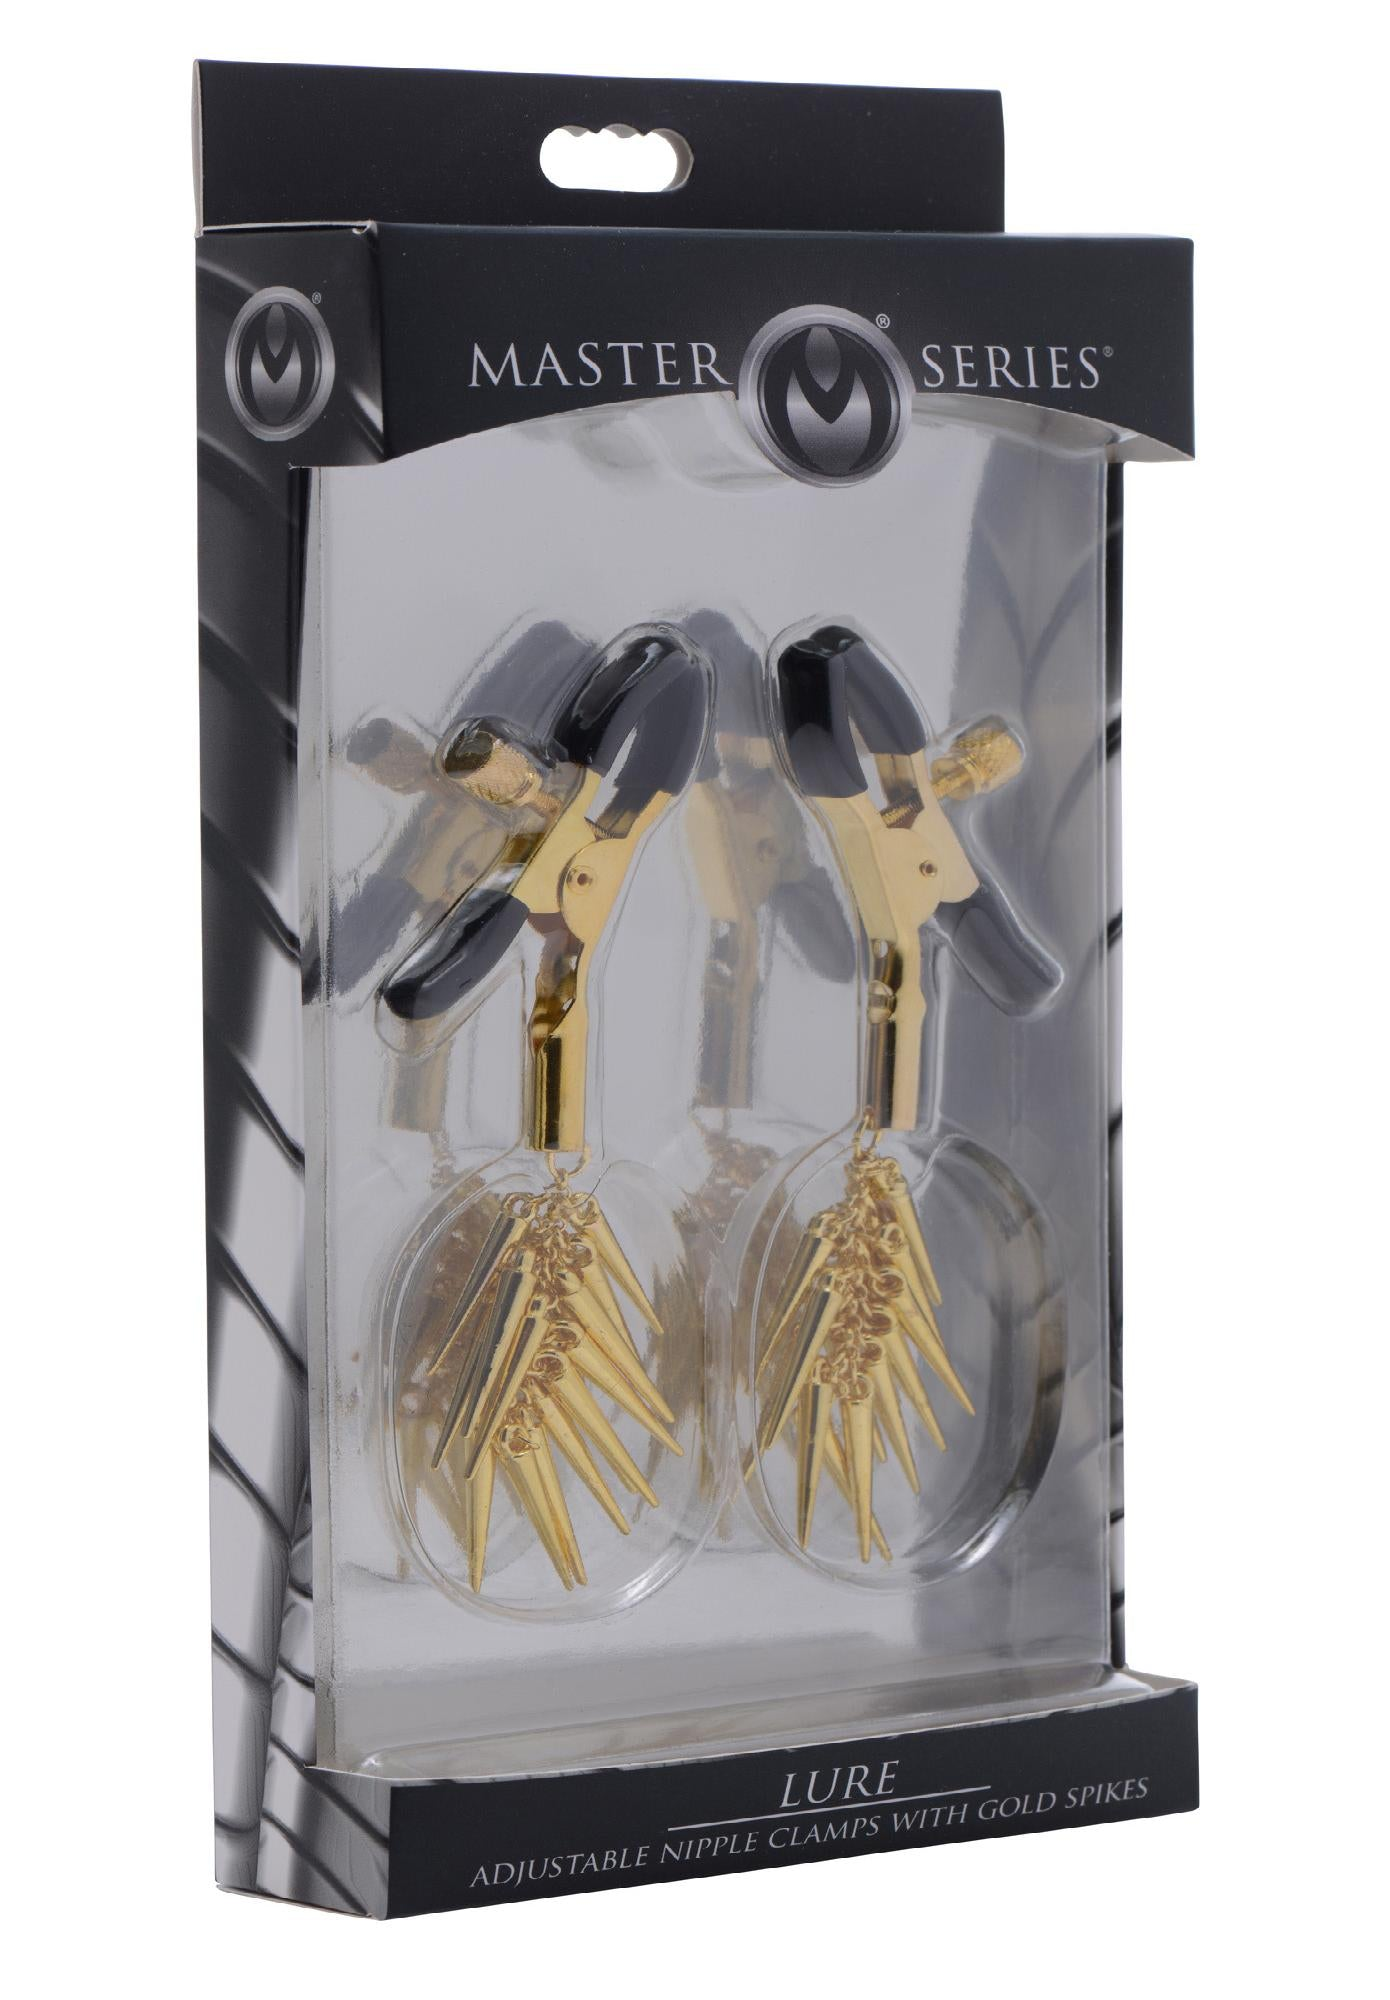 Lure Adjustable Nipple Clamps with Gold Spikes